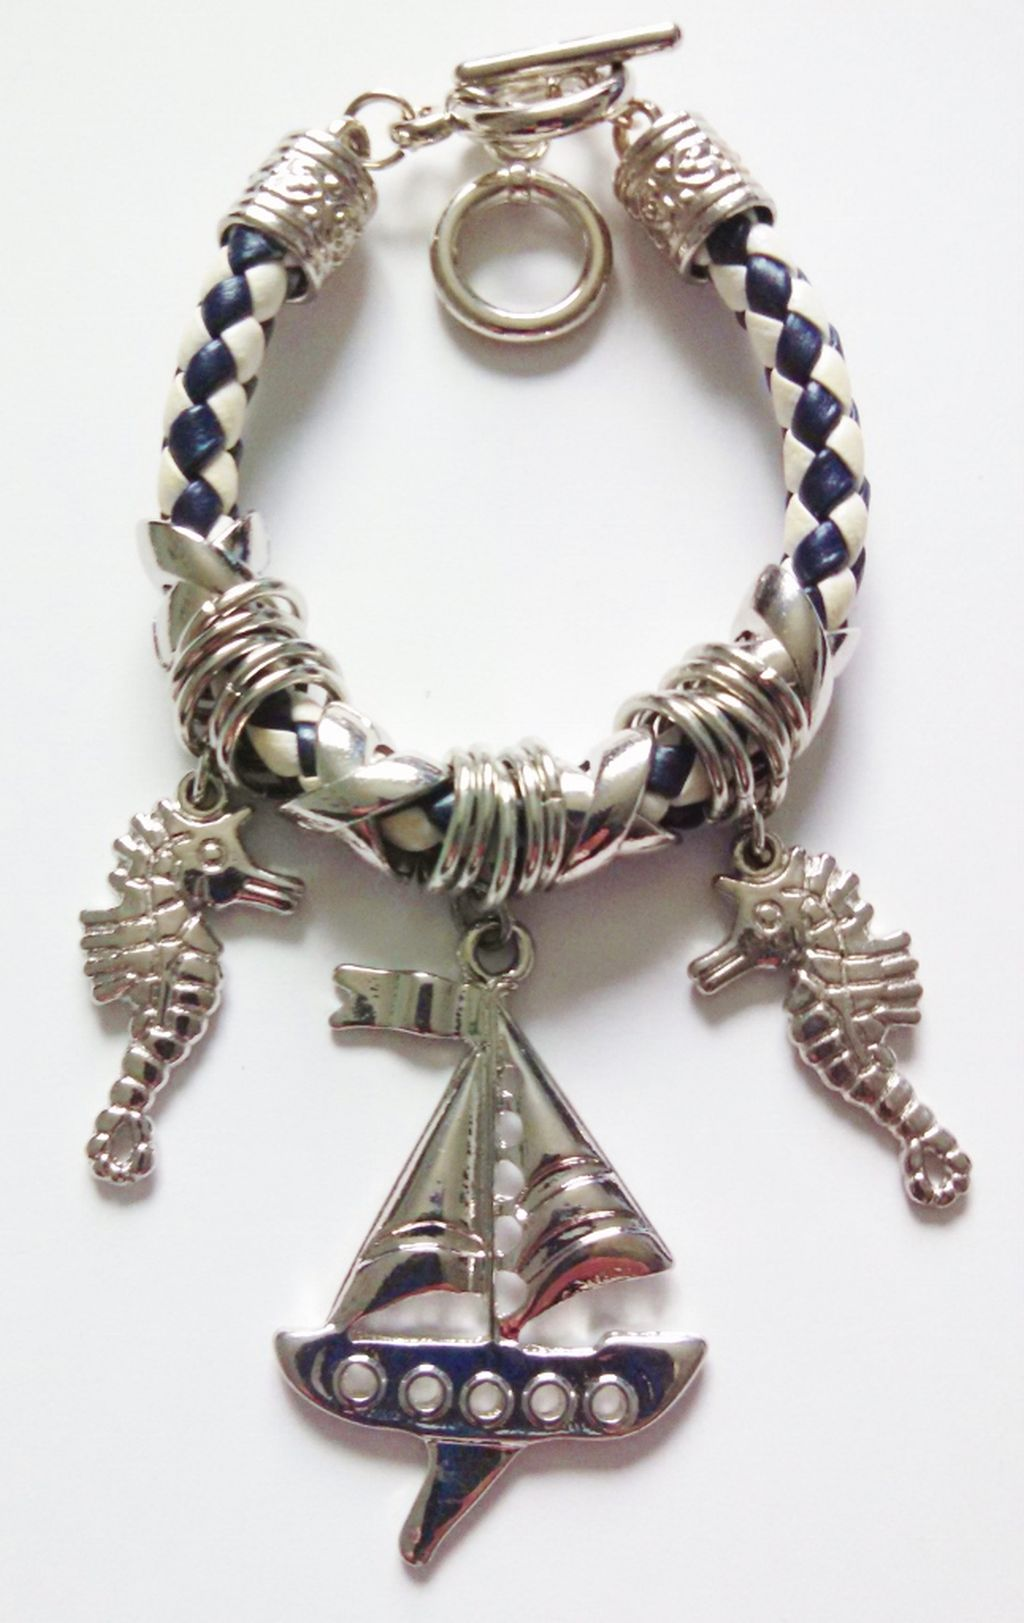 Silver Ship/Yacht & Seahorse Sailing Charm Bracelet, Nautical Jewelry Blue/White